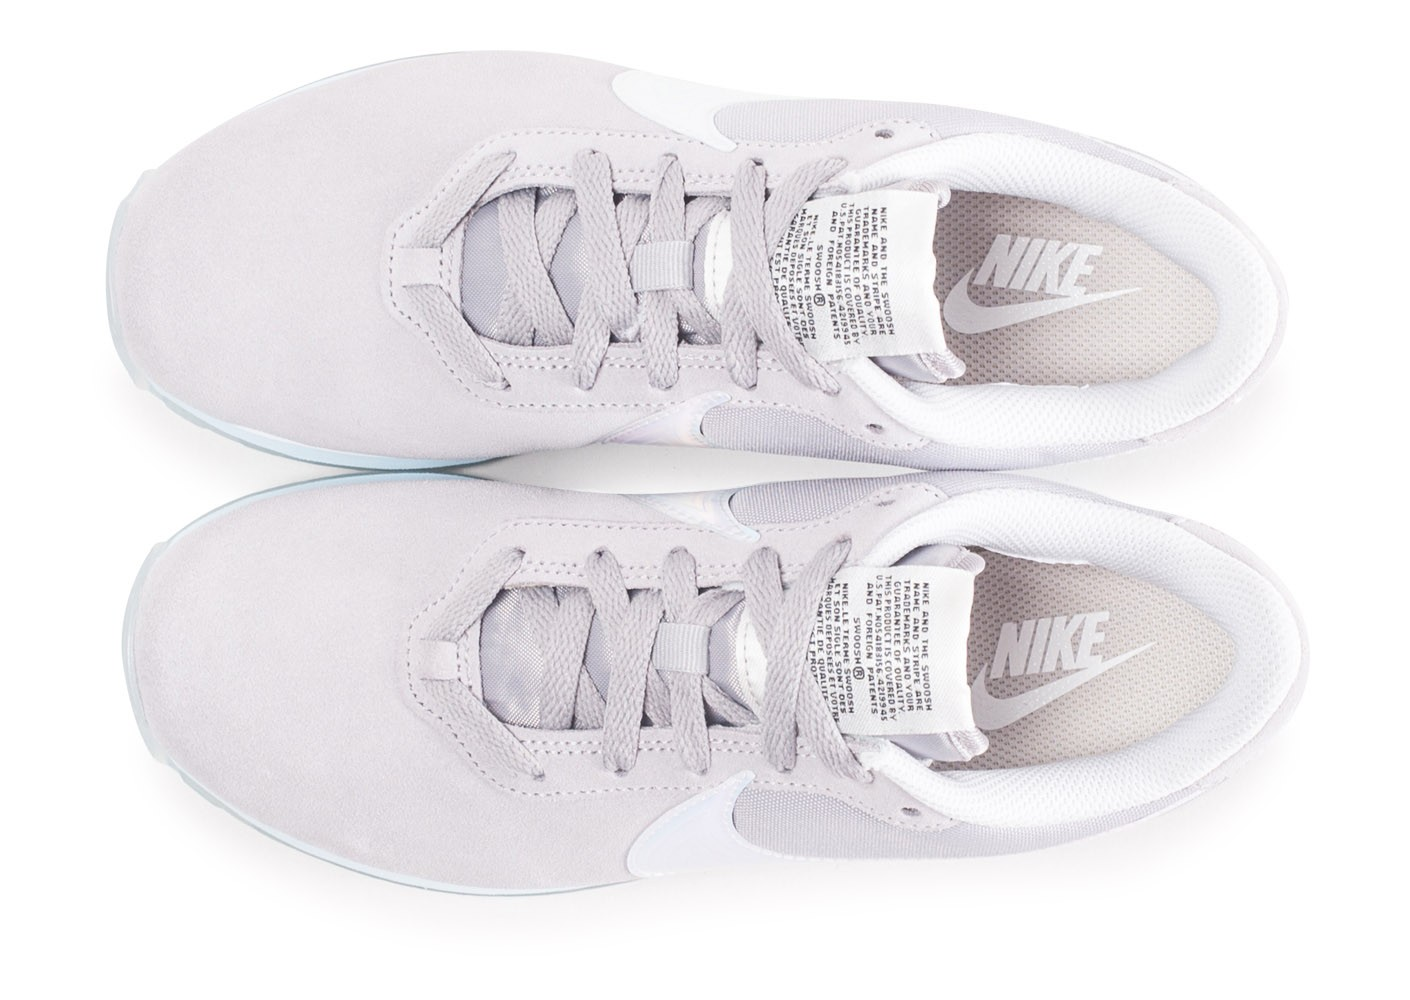 new style 4c1ac bcd3c ... Chaussures Nike Pre-Love O.X. gris femme vue arrière ...